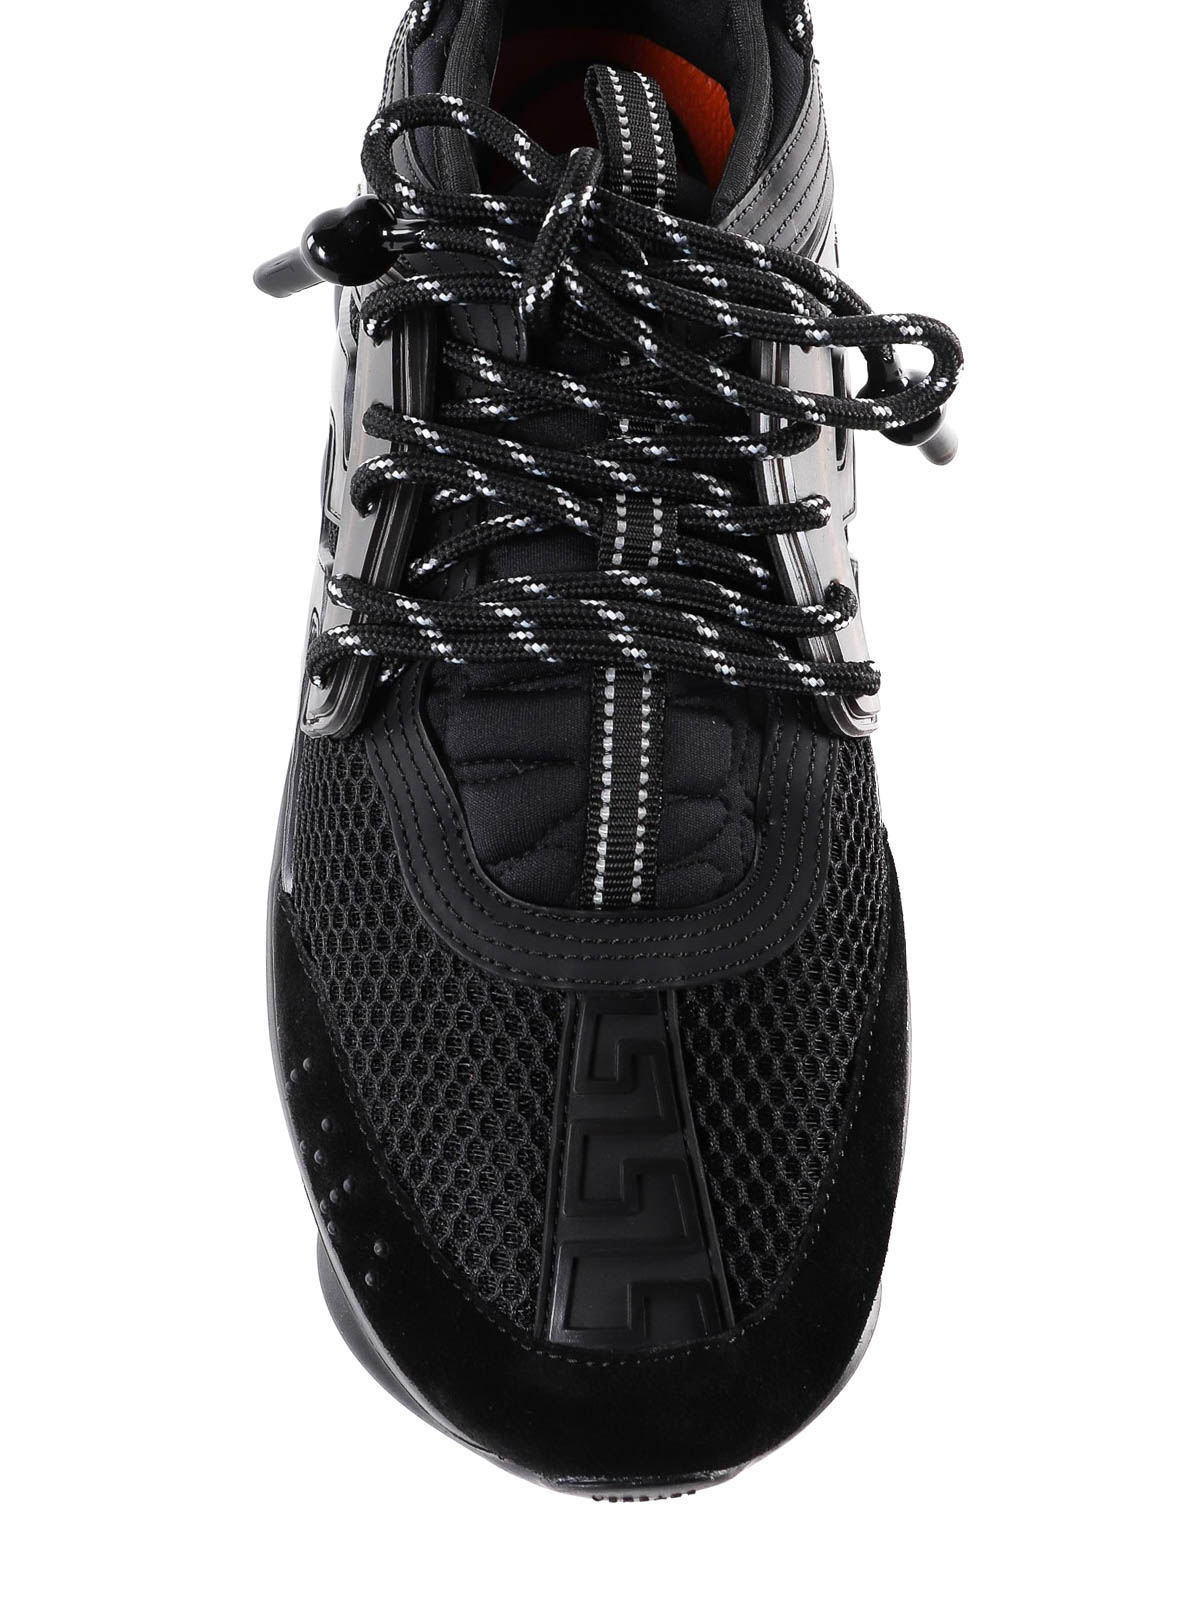 Versace - Sneaker Chain Reaction nere con suola alta ...